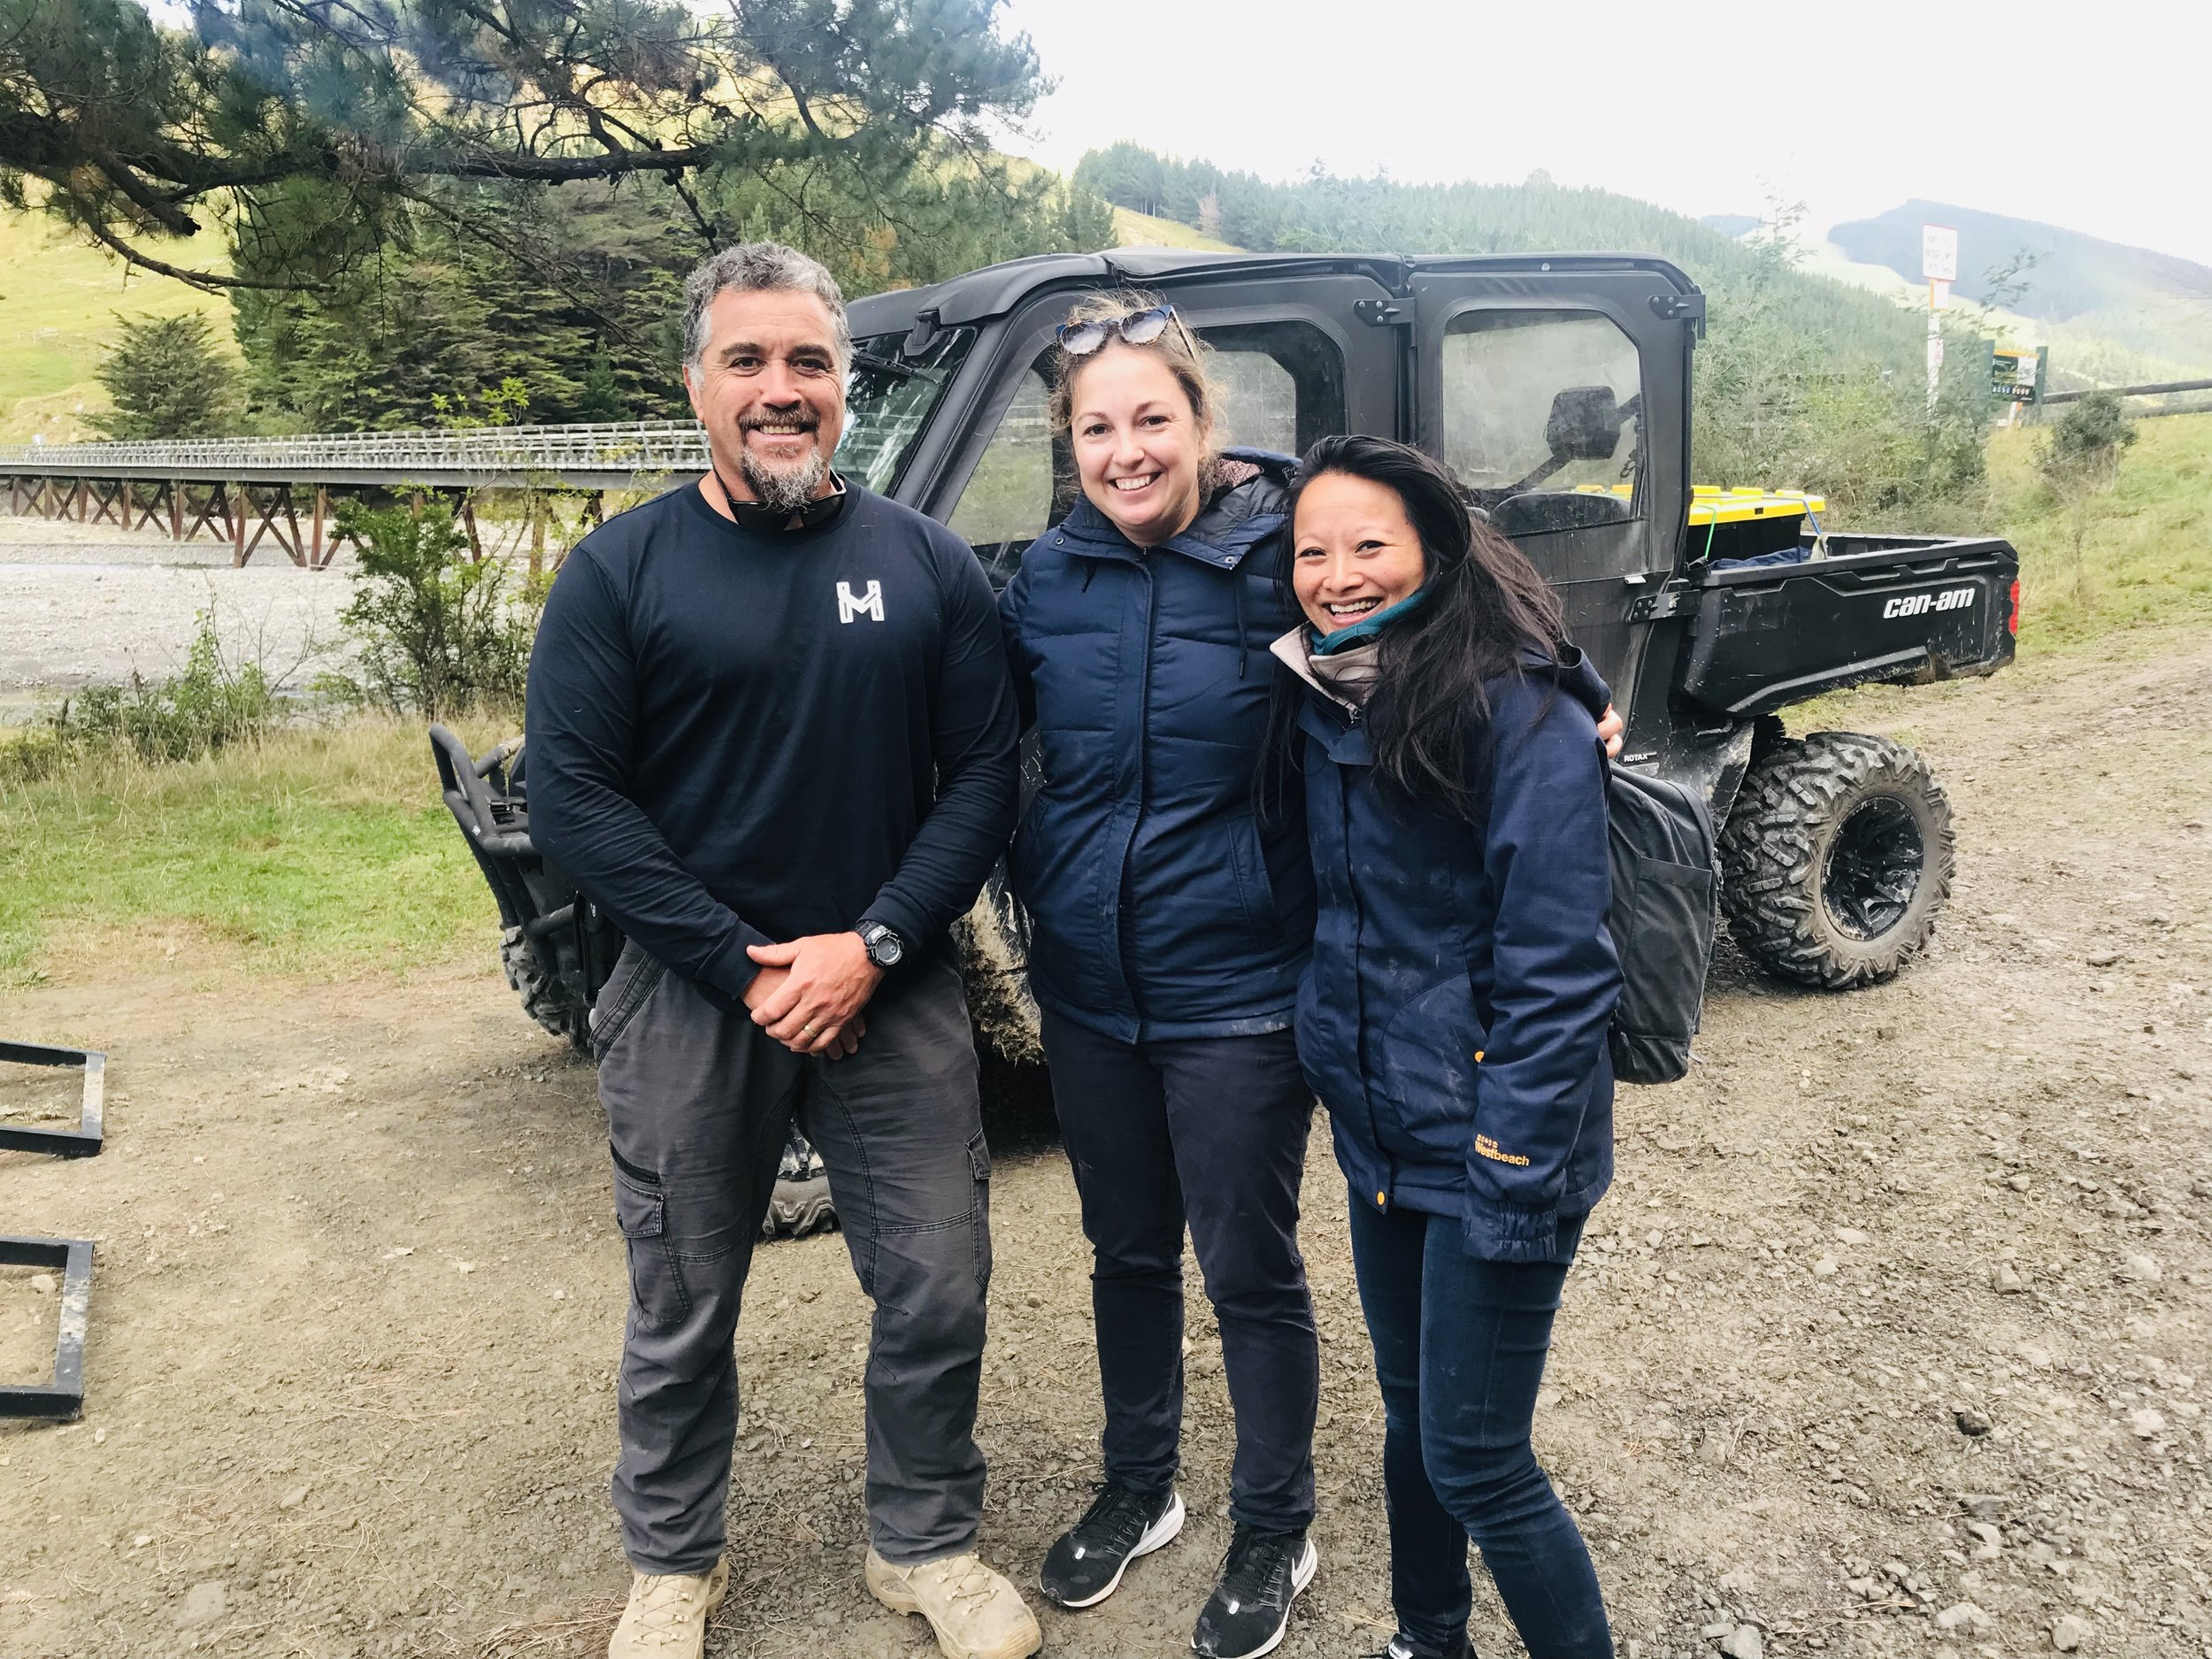 Monty at the end of a Sunrise Tour with two happy manuhiri (guests) - those smiles say it all